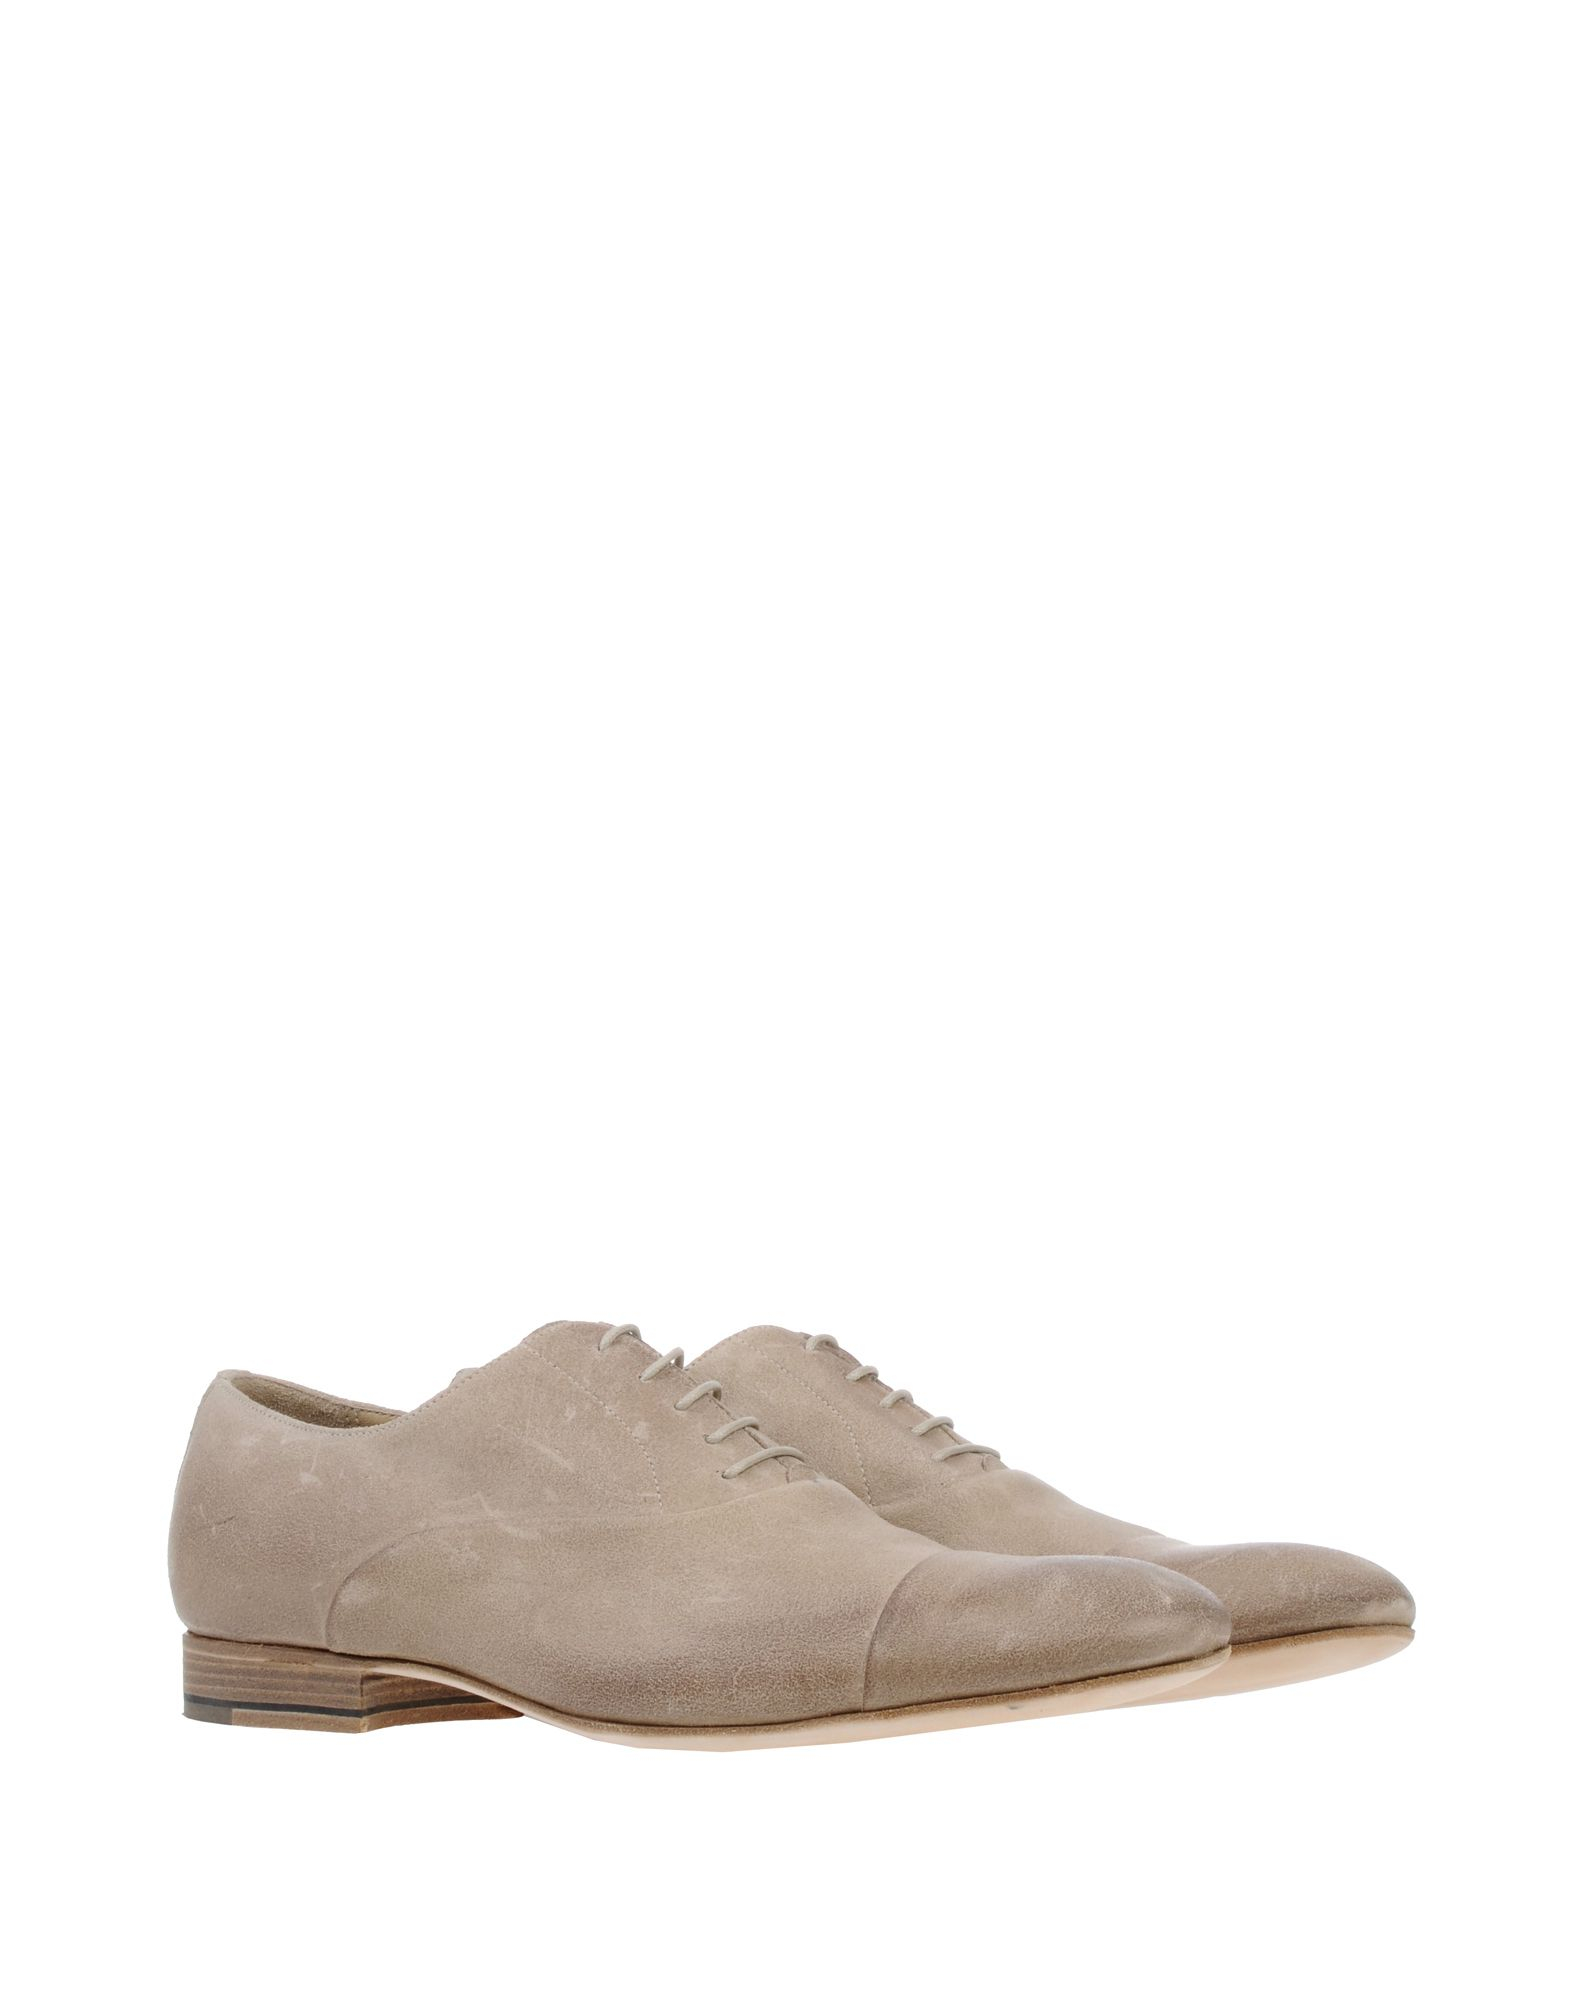 pierre hardy lace up shoes in natural for men lyst. Black Bedroom Furniture Sets. Home Design Ideas